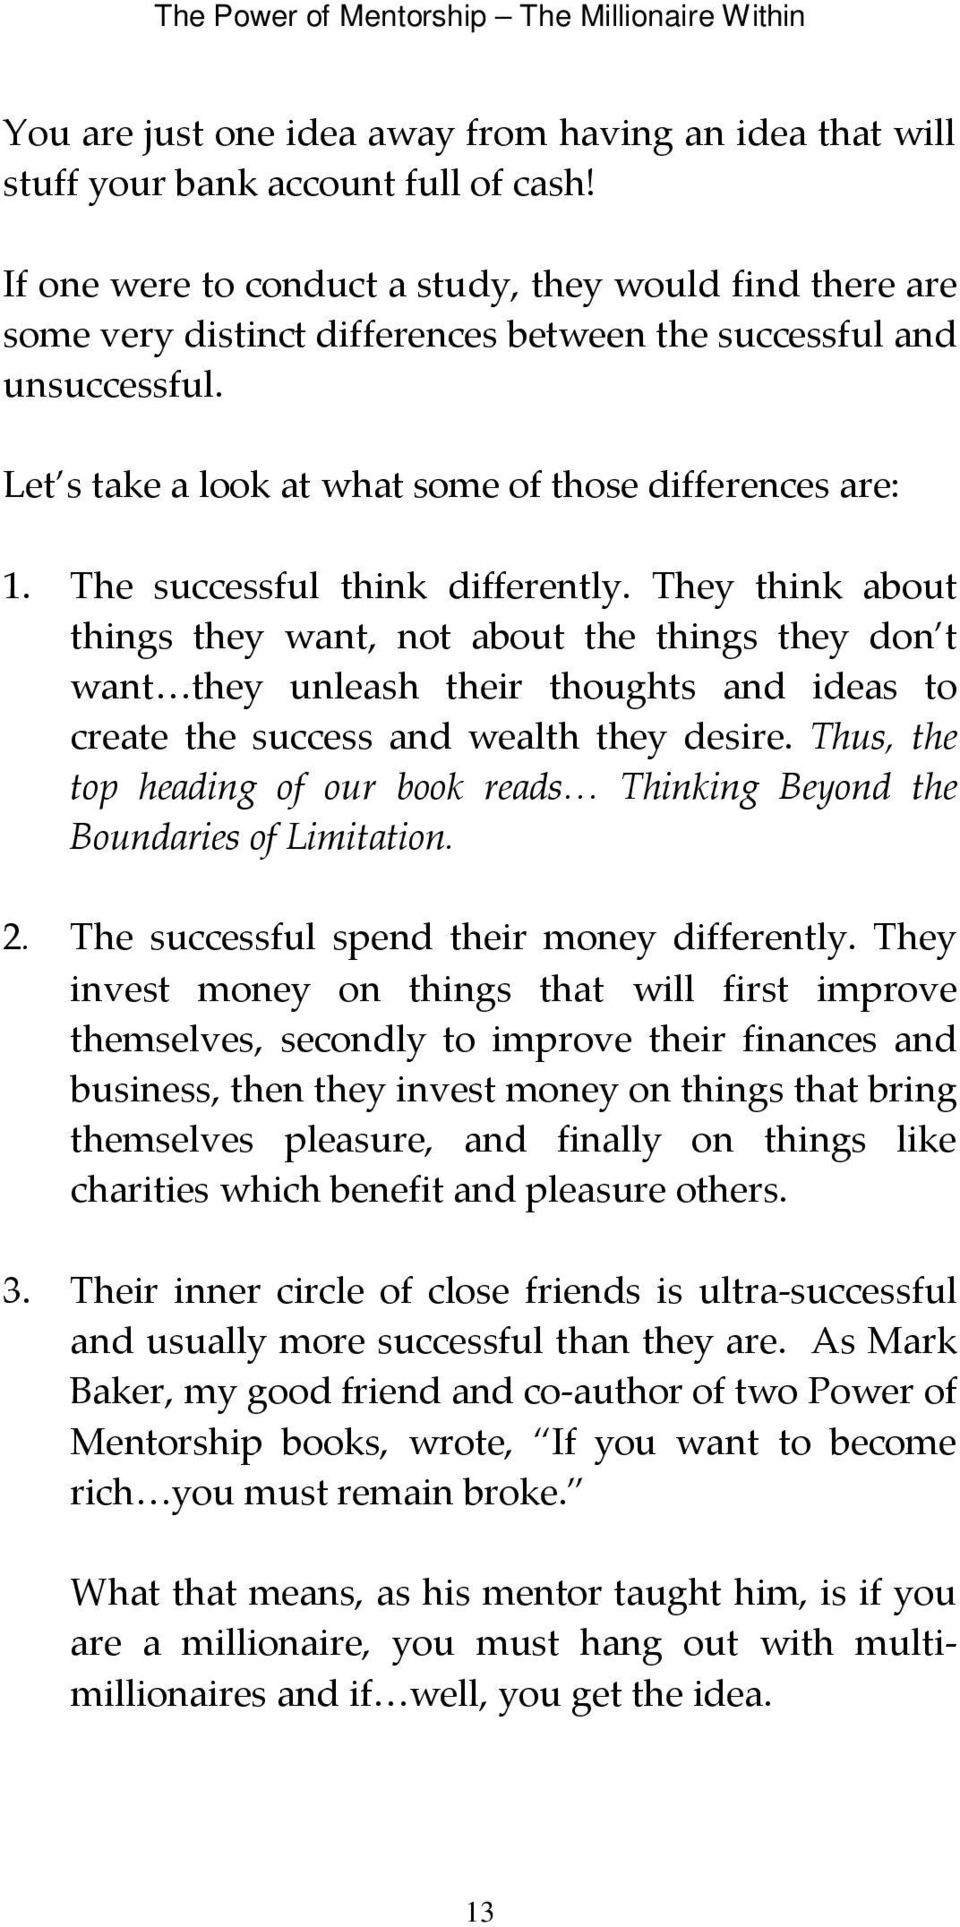 The successful think differently. They think about things they want, not about the things they don t want they unleash their thoughts and ideas to create the success and wealth they desire.